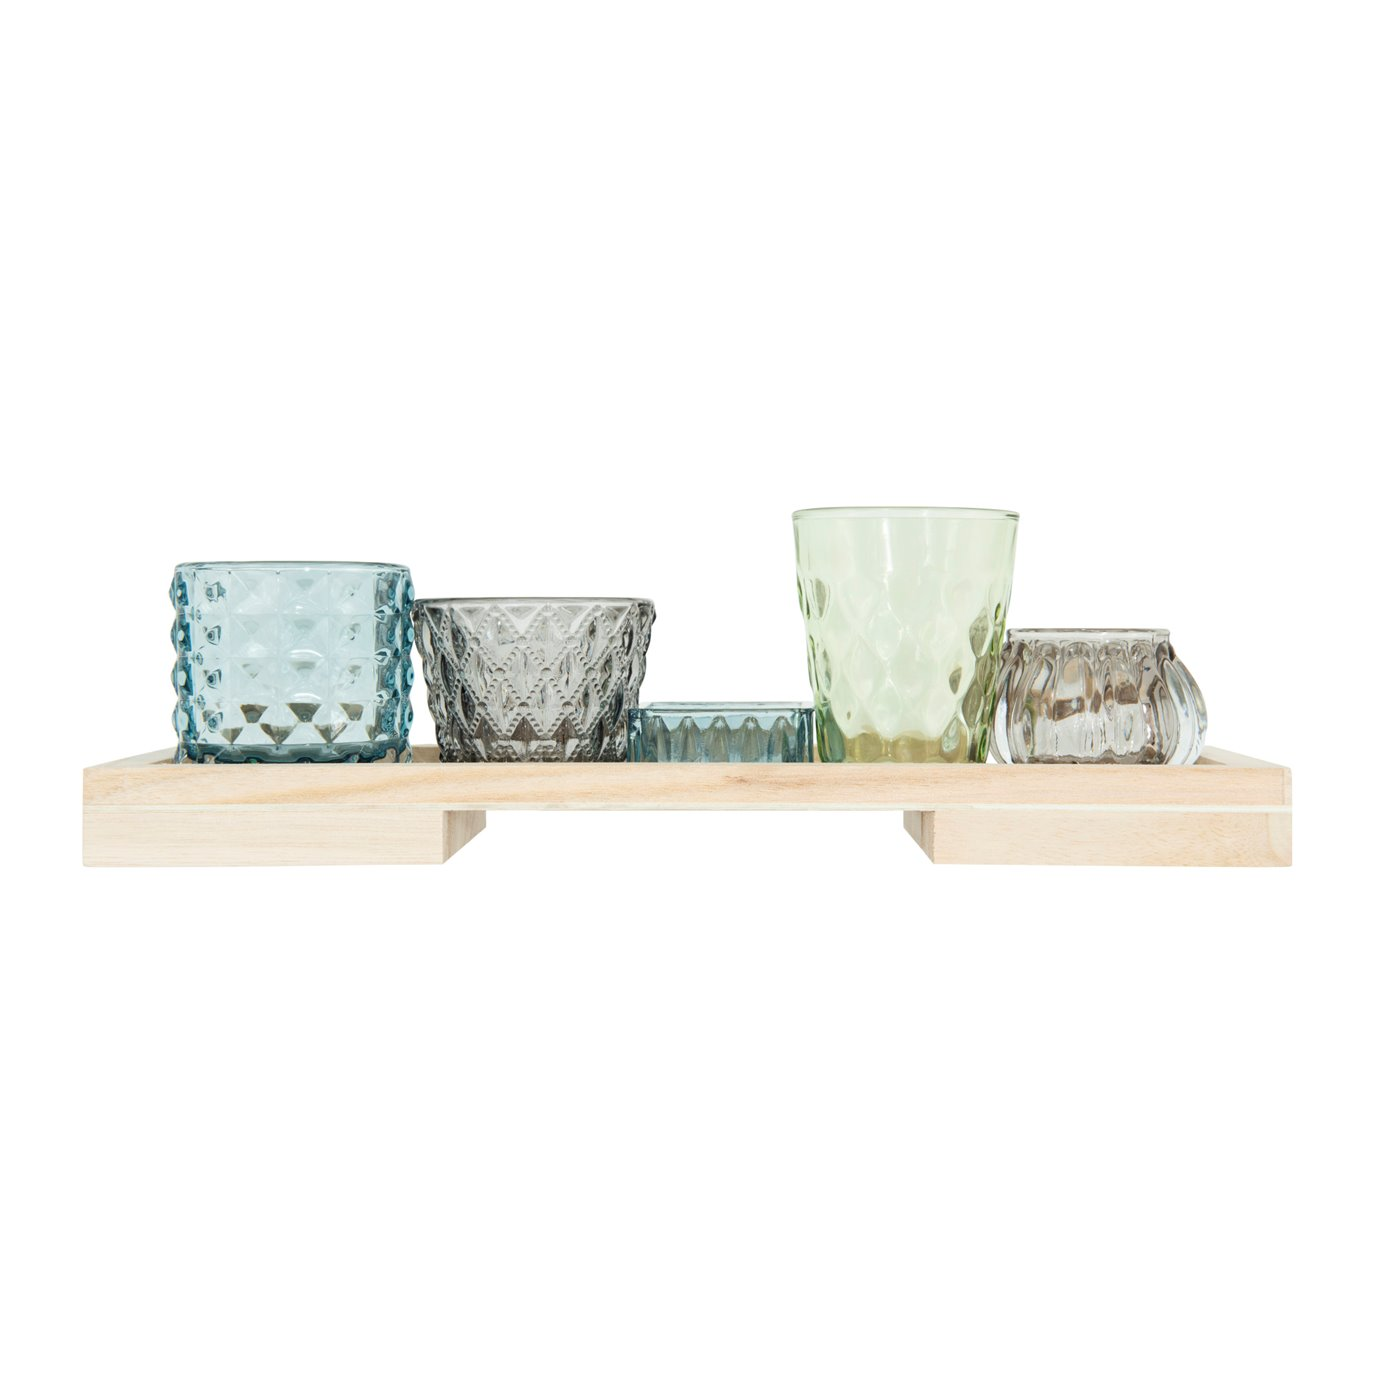 Glass Votive/Tealight Holders on Wood Tray (Set of 5 Pieces)